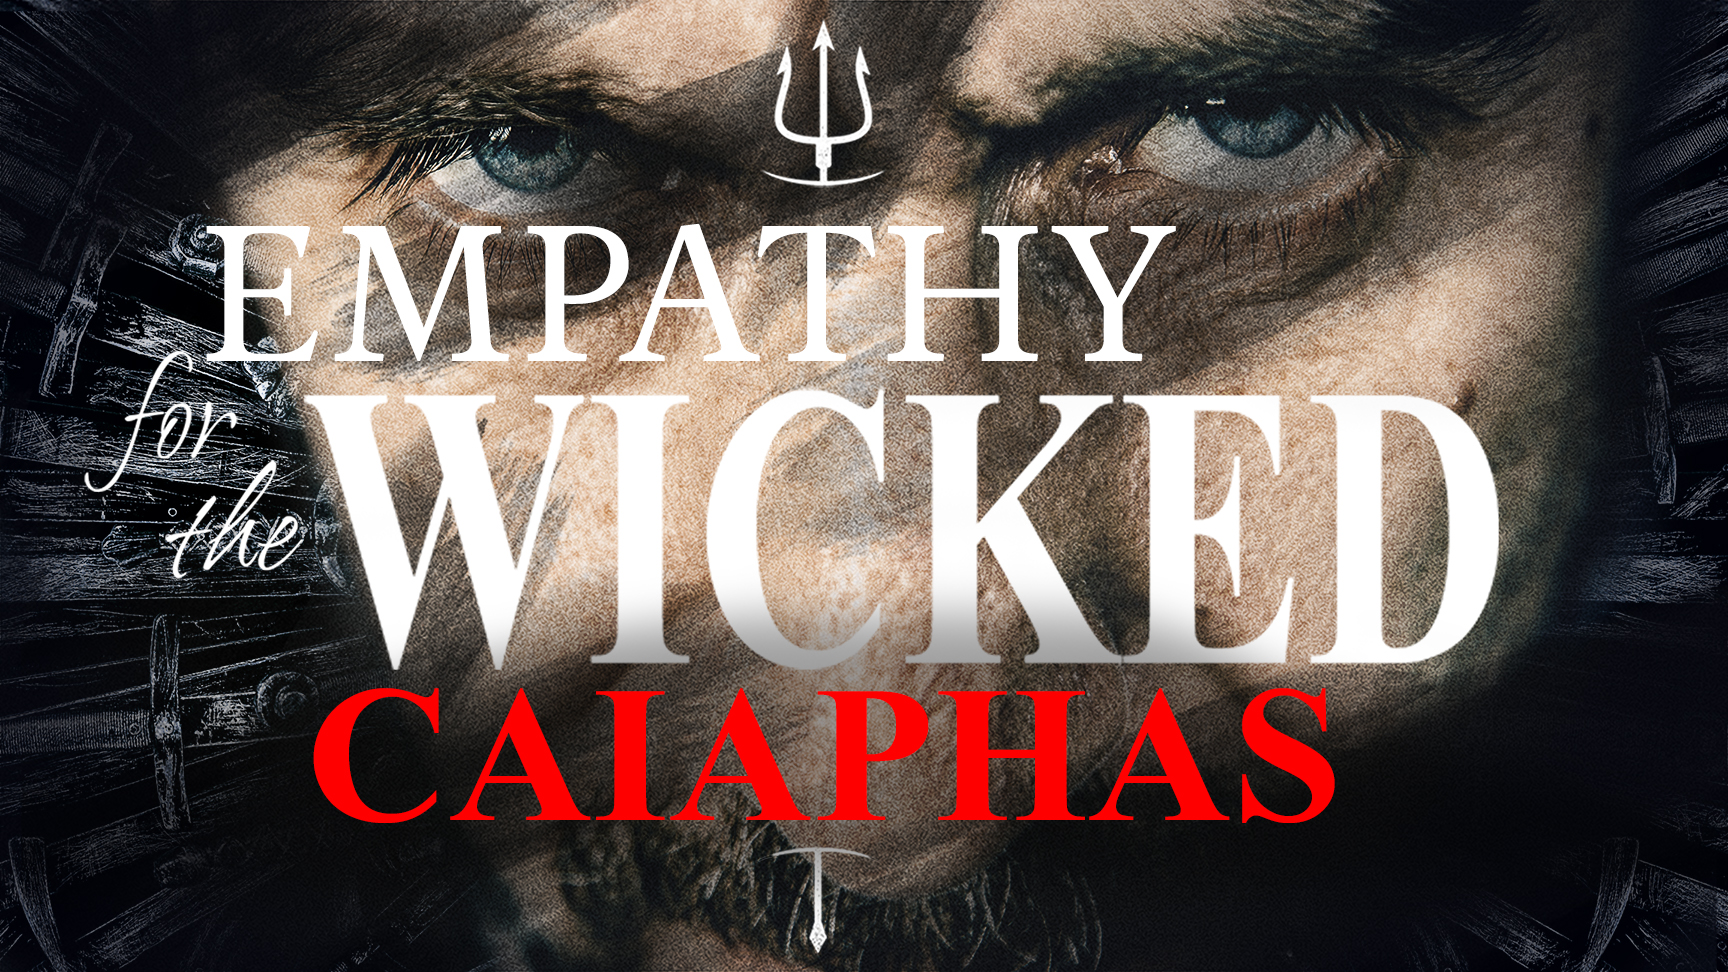 Empathy for the Wicked: CAIAPHAS